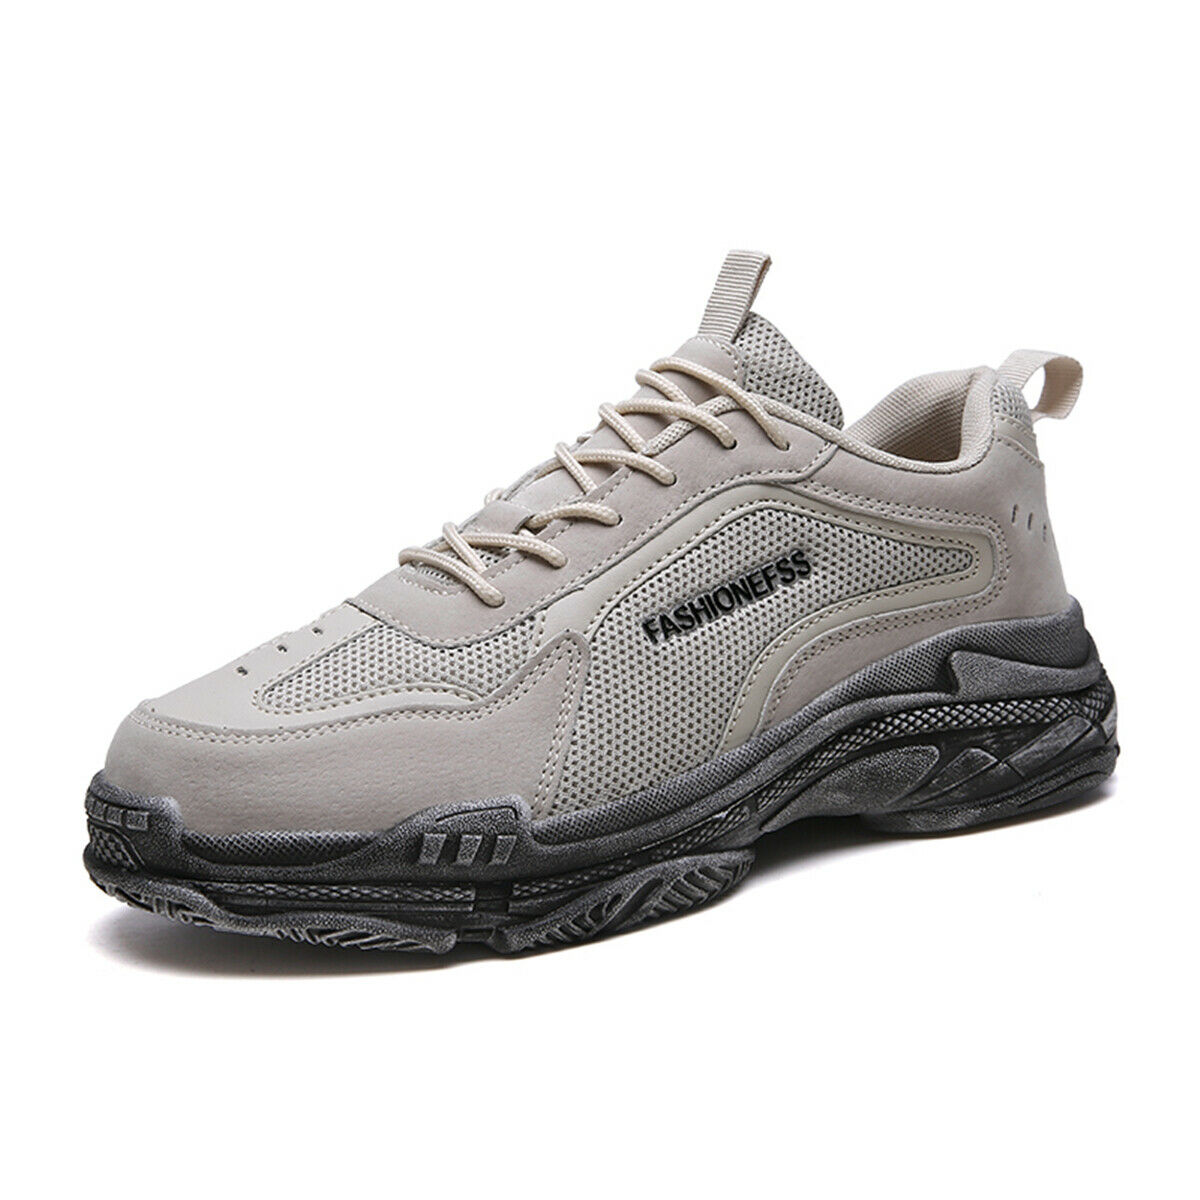 2019 Fashion Mens Sports Dad shoes Running Gym Tennis Walking shoes Breathable